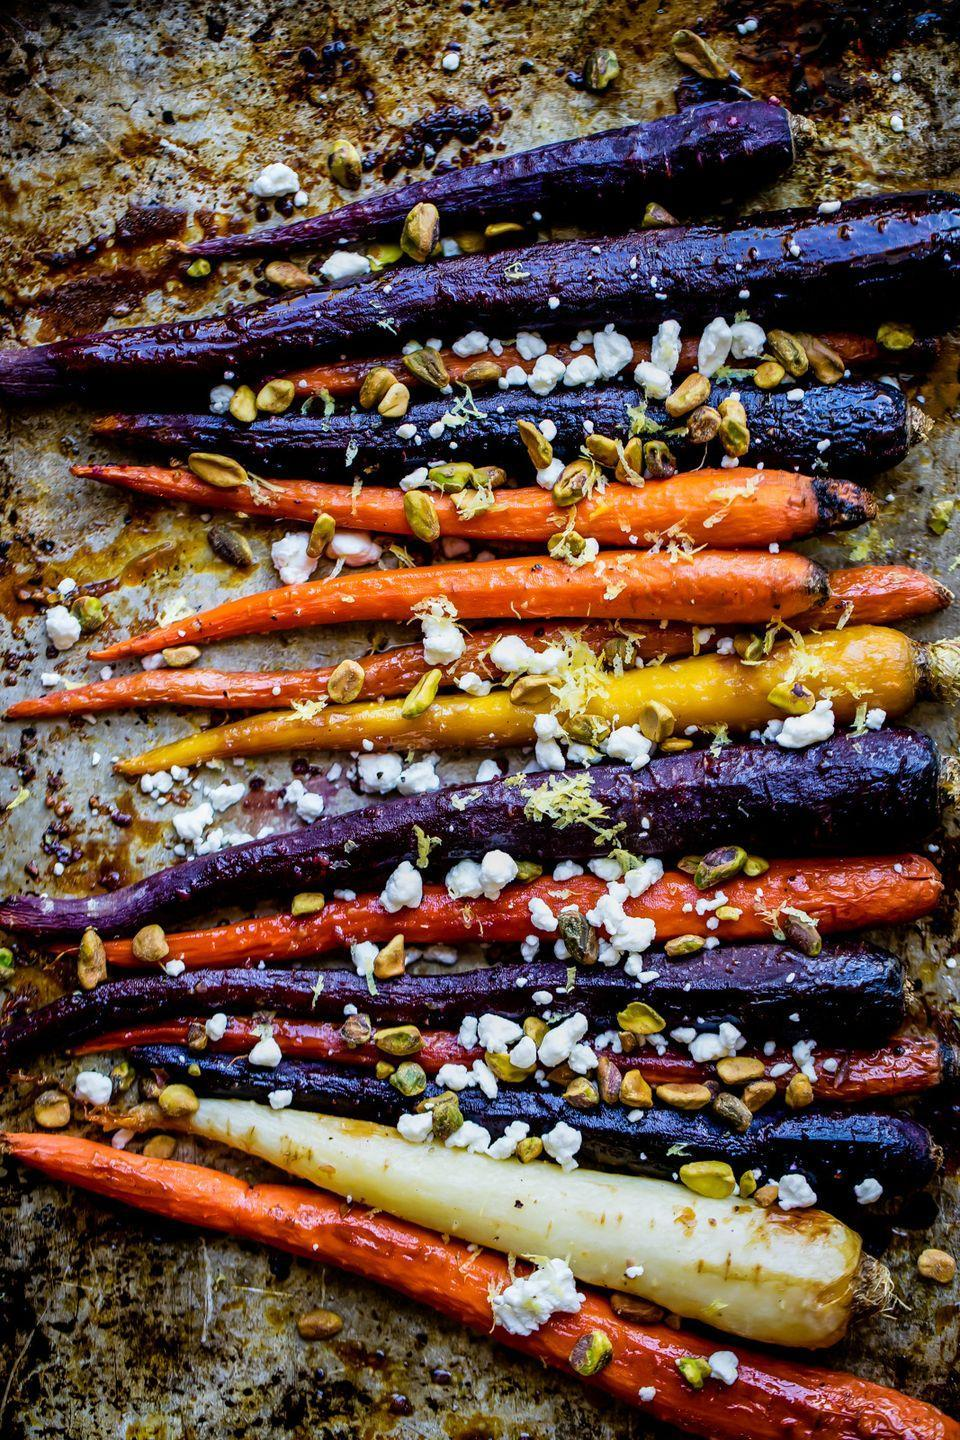 "<p>How stunning is this <a href=""https://www.countryliving.com/food-drinks/g3814/vegetable-side-dishes/"" rel=""nofollow noopener"" target=""_blank"" data-ylk=""slk:vegetable side dish"" class=""link rapid-noclick-resp"">vegetable side dish</a>? This <a href=""https://www.countryliving.com/food-drinks/g5165/carrot-recipes/"" rel=""nofollow noopener"" target=""_blank"" data-ylk=""slk:carrot recipe"" class=""link rapid-noclick-resp"">carrot recipe</a> is <em>almost</em> too pretty to eat. </p><p><strong>Get the recipe at <a href=""https://www.ambitiouskitchen.com/maple-glazed-carrots/"" rel=""nofollow noopener"" target=""_blank"" data-ylk=""slk:Ambitious Kitchen"" class=""link rapid-noclick-resp"">Ambitious Kitchen</a>.</strong> </p>"